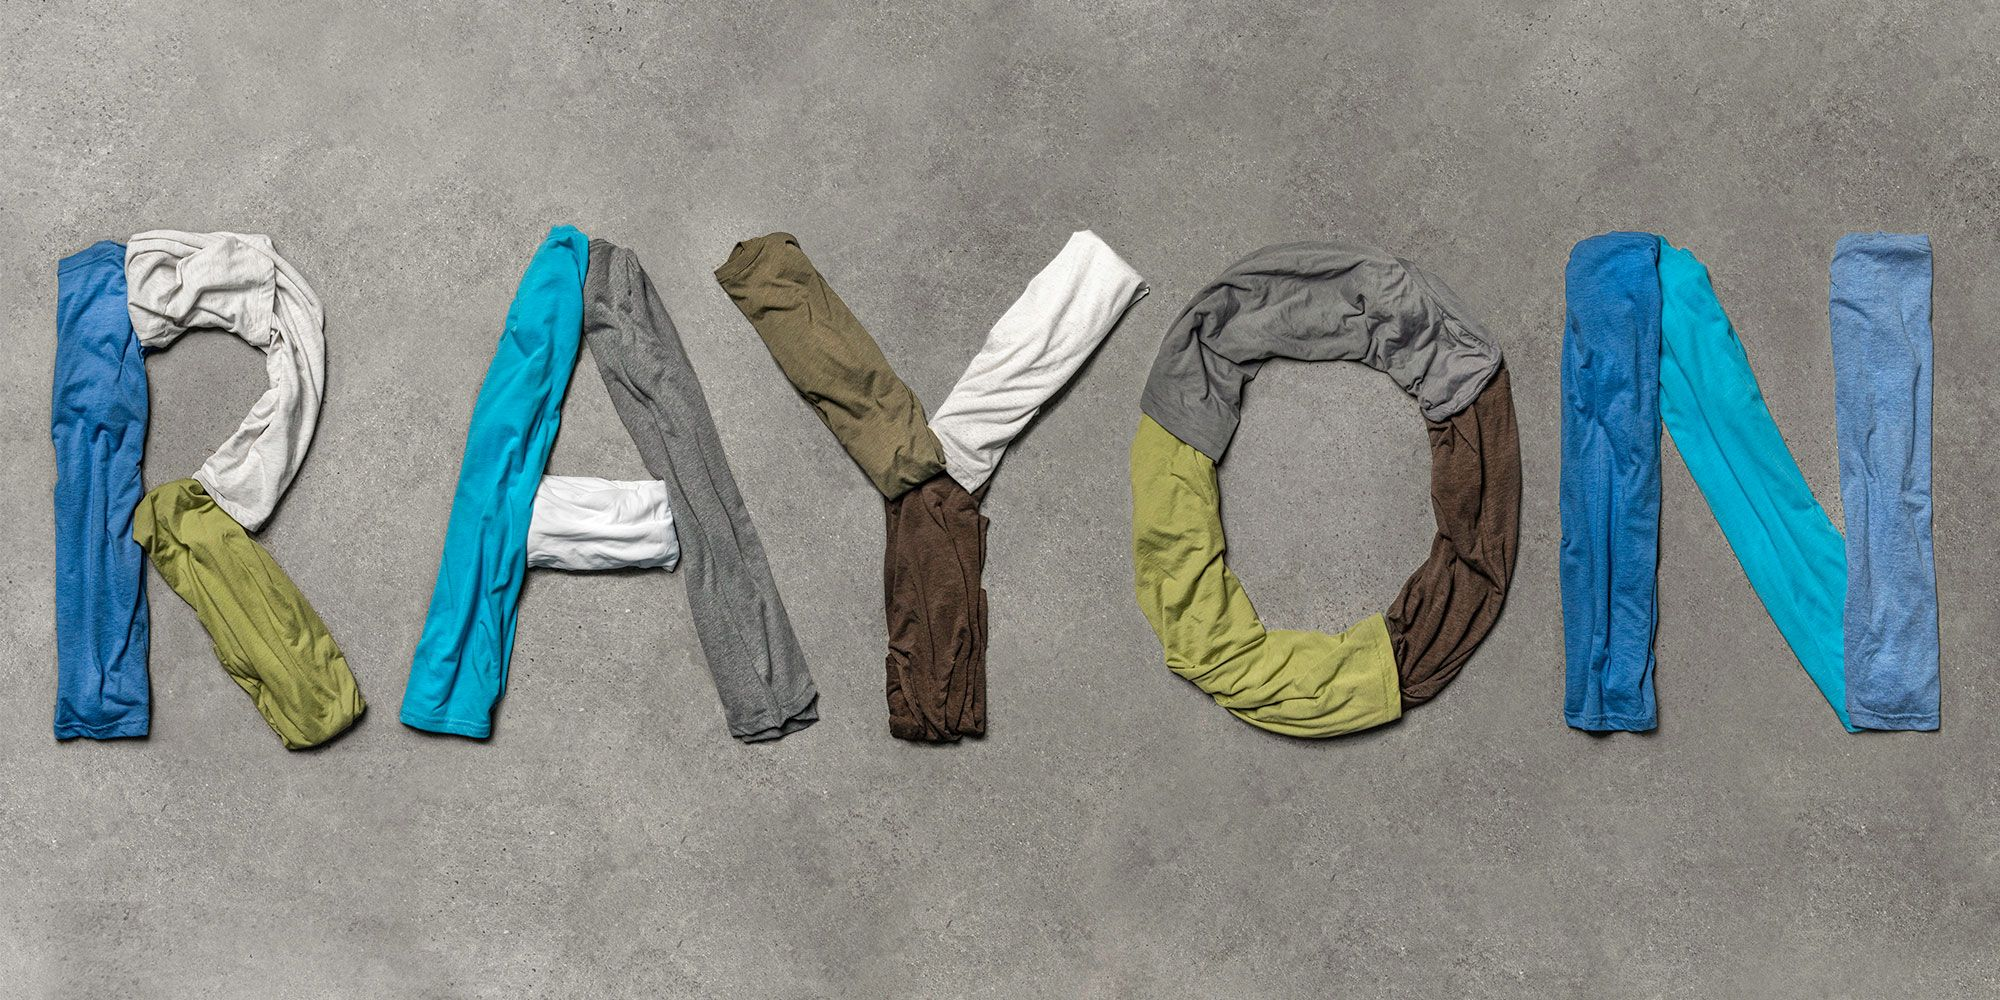 Flatlay image of t-shirts spelling out Rayon.